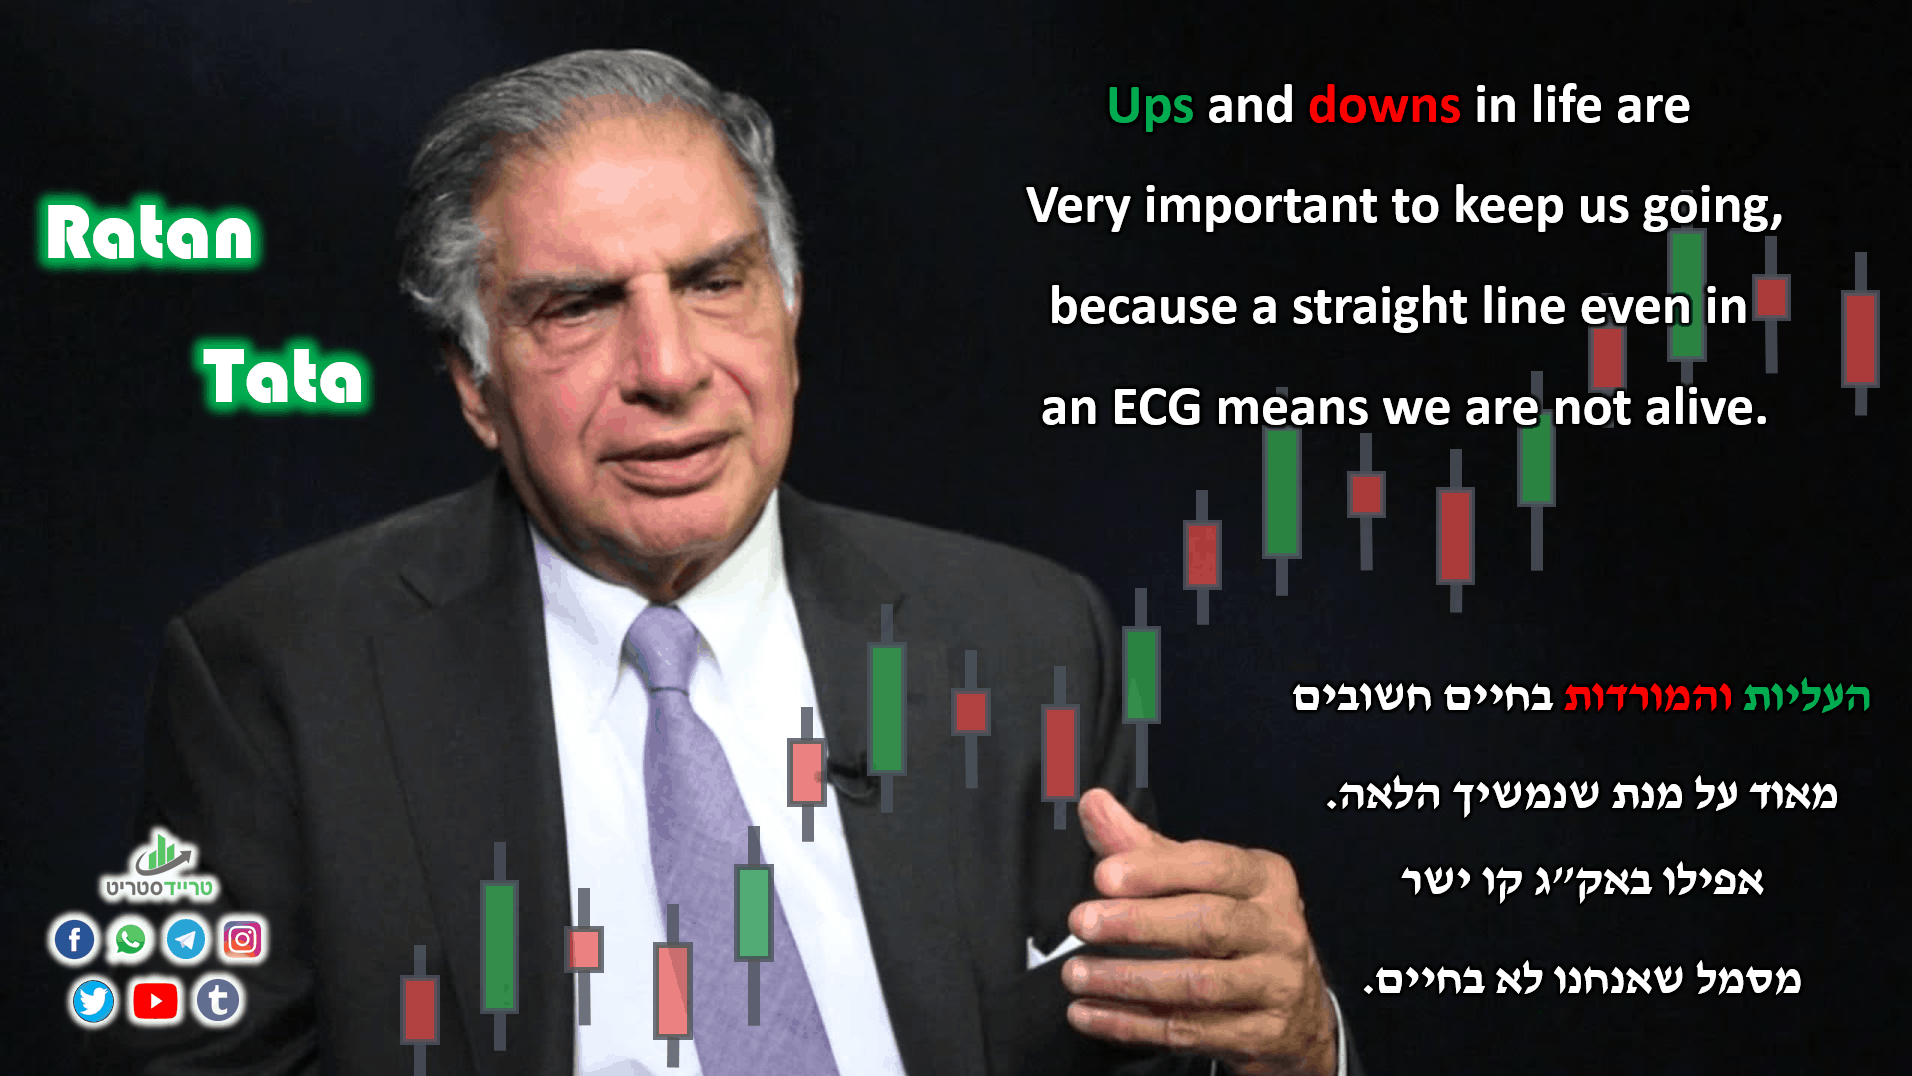 Ratan Tata - Ups and downs in life are Very important to keep